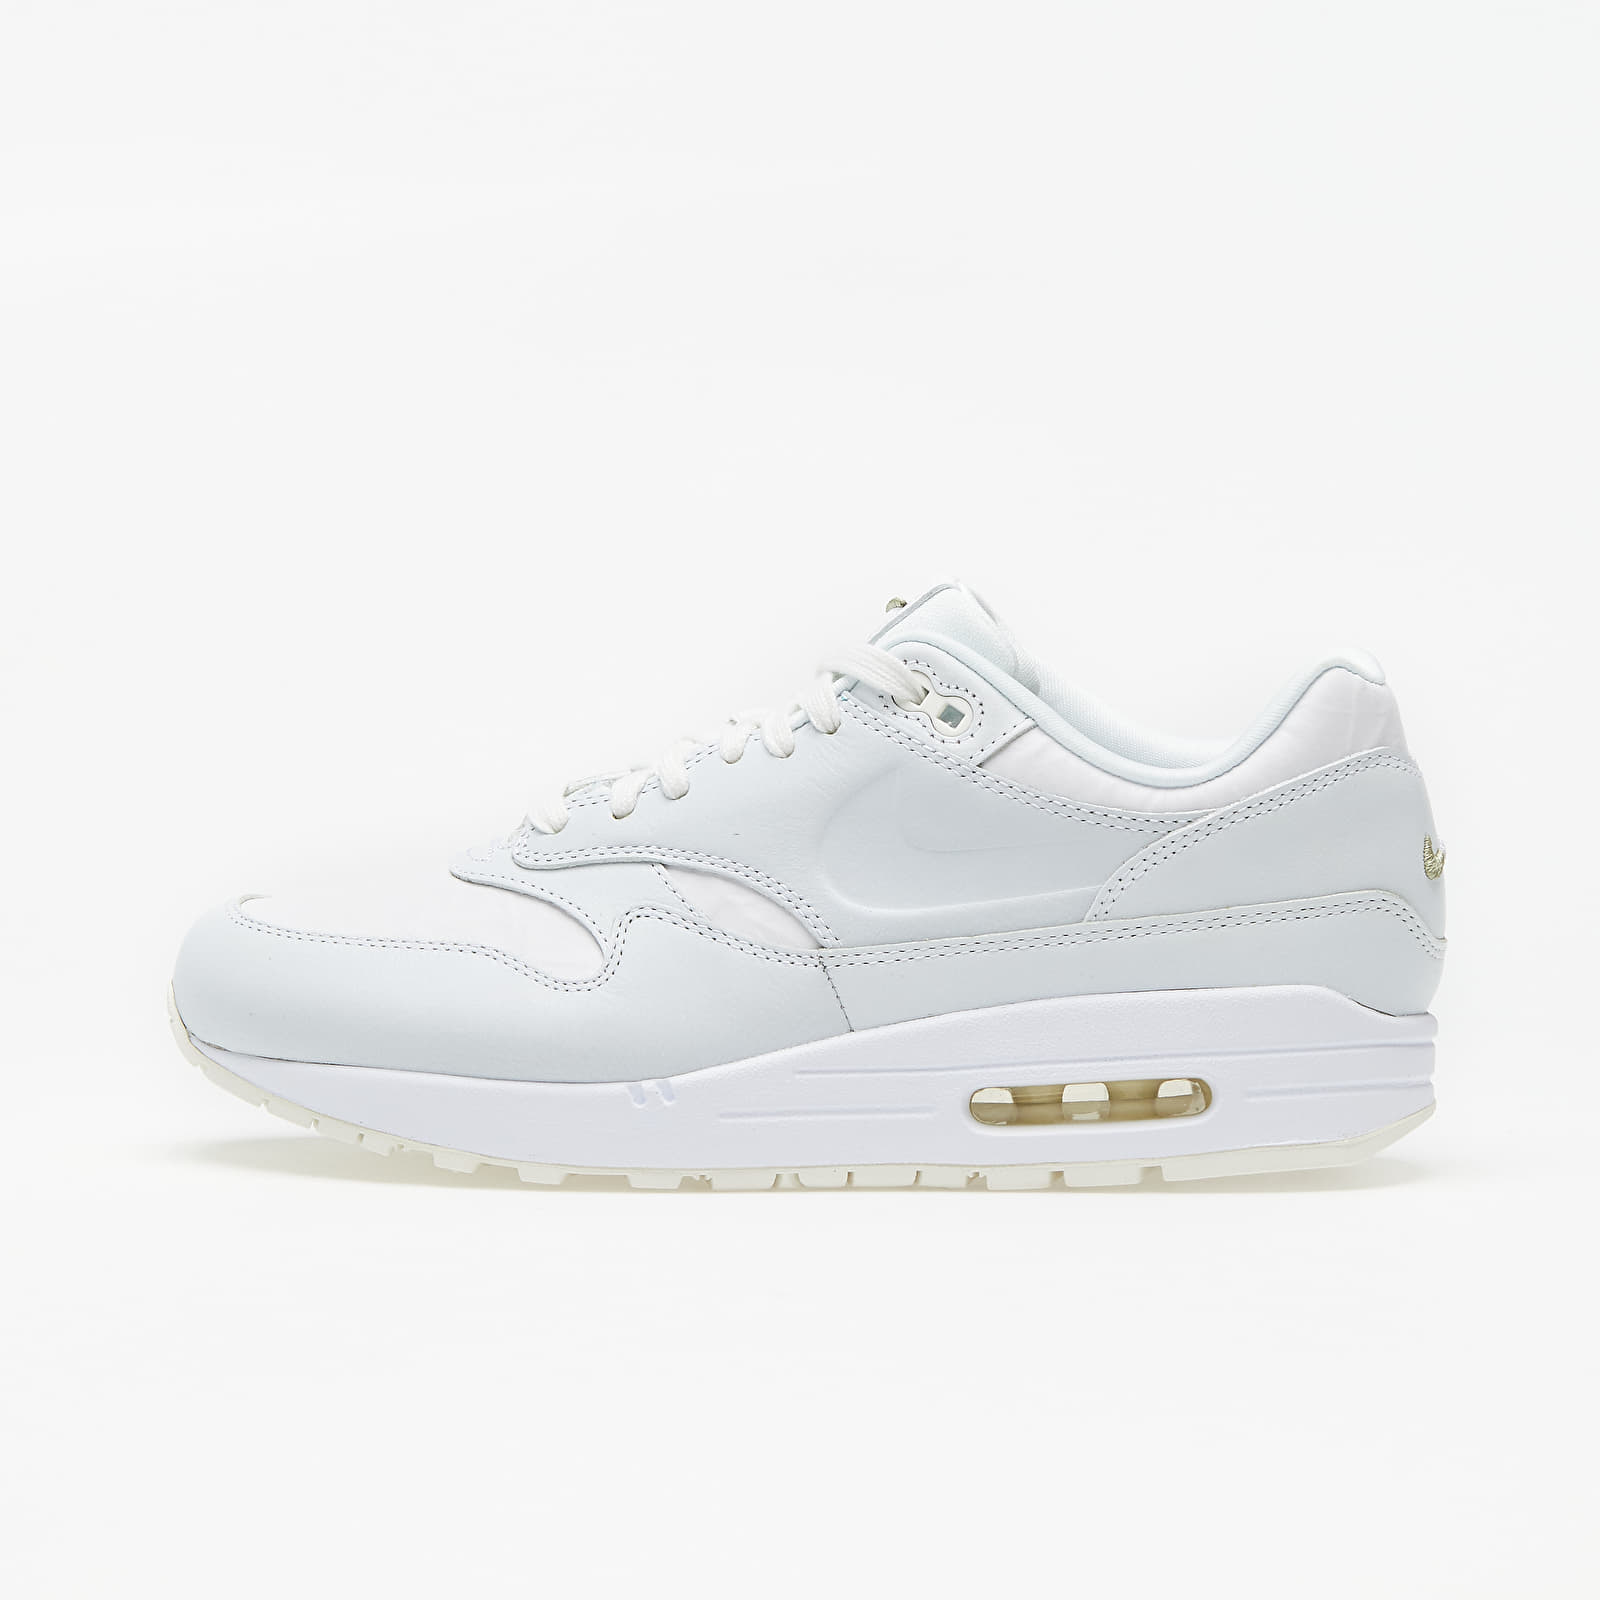 Men's shoes Nike Air Max 1 Summit White/ White-Sail-Medium Khaki